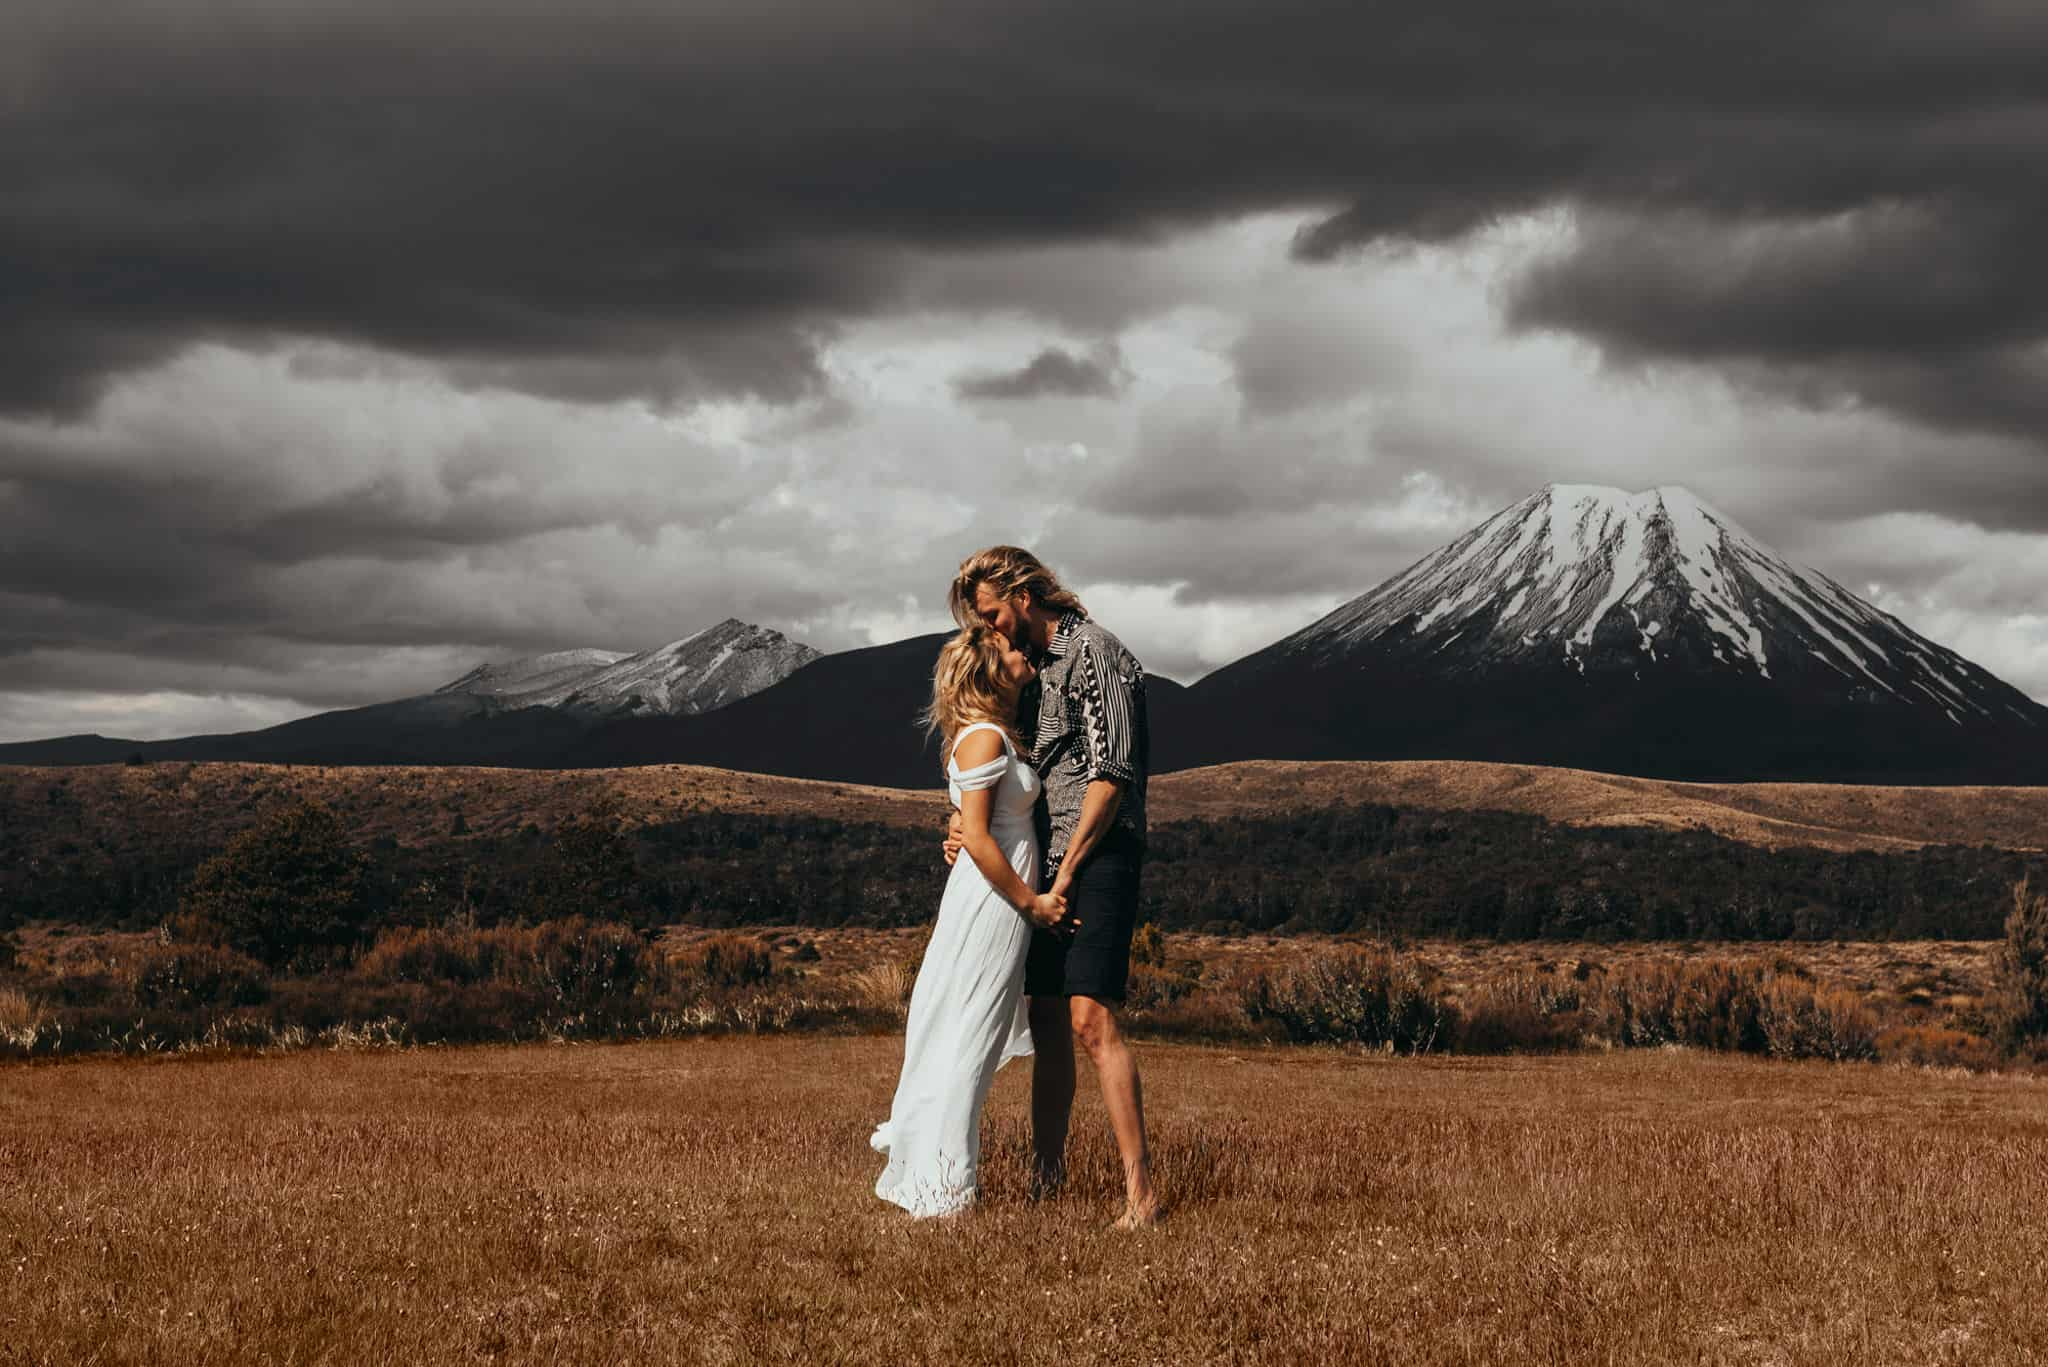 Couple Poses in front of a mountain